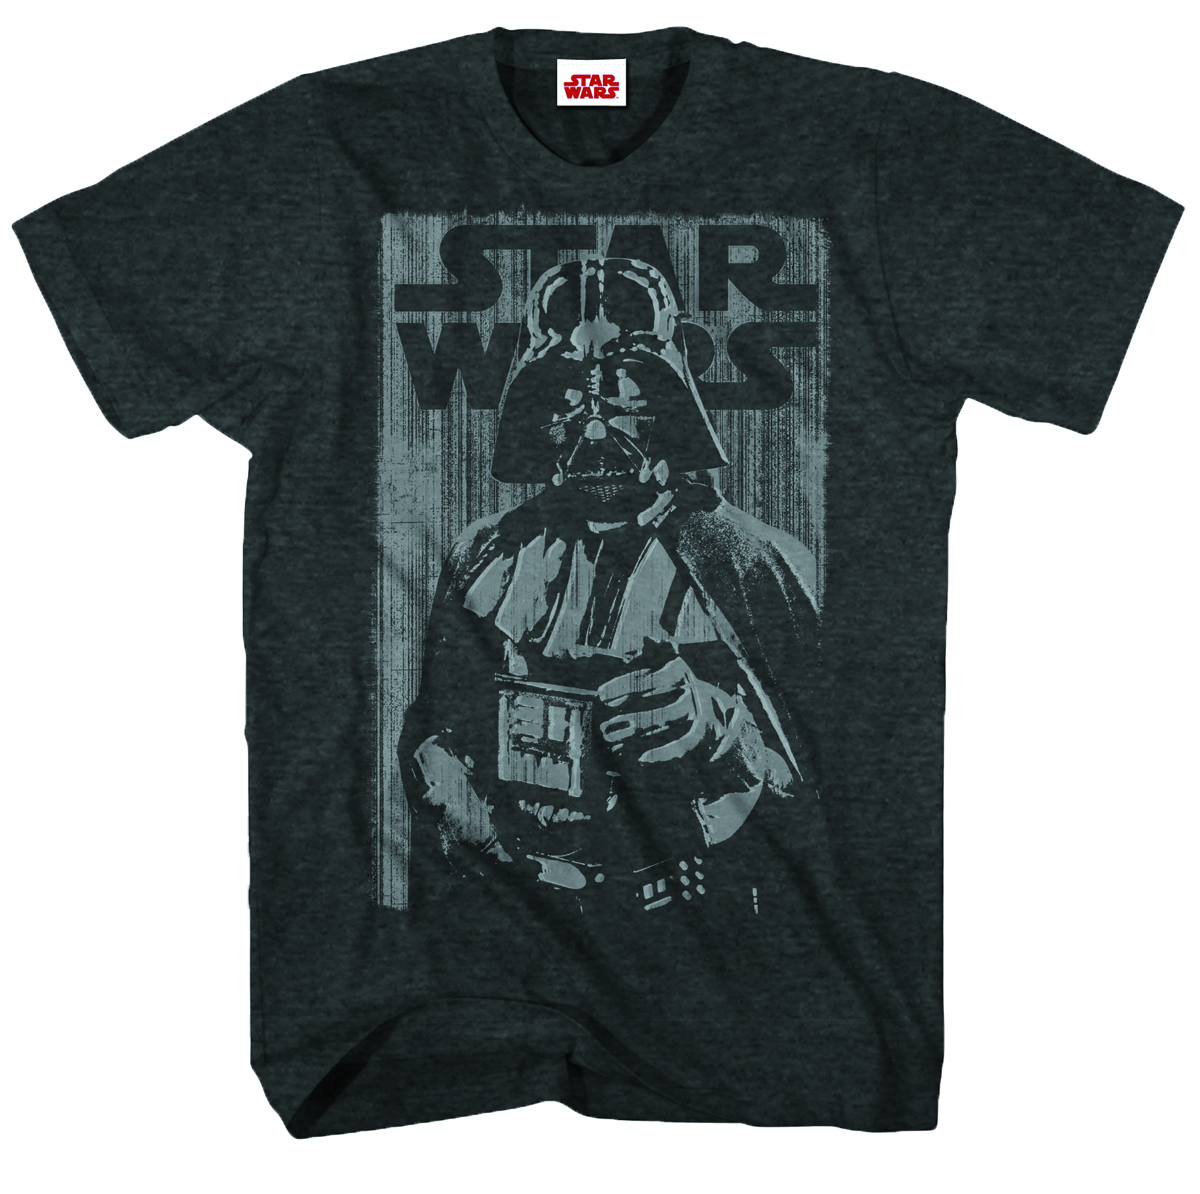 STAR WARS COOL AS ME PX BLK HEATHER T/S MED